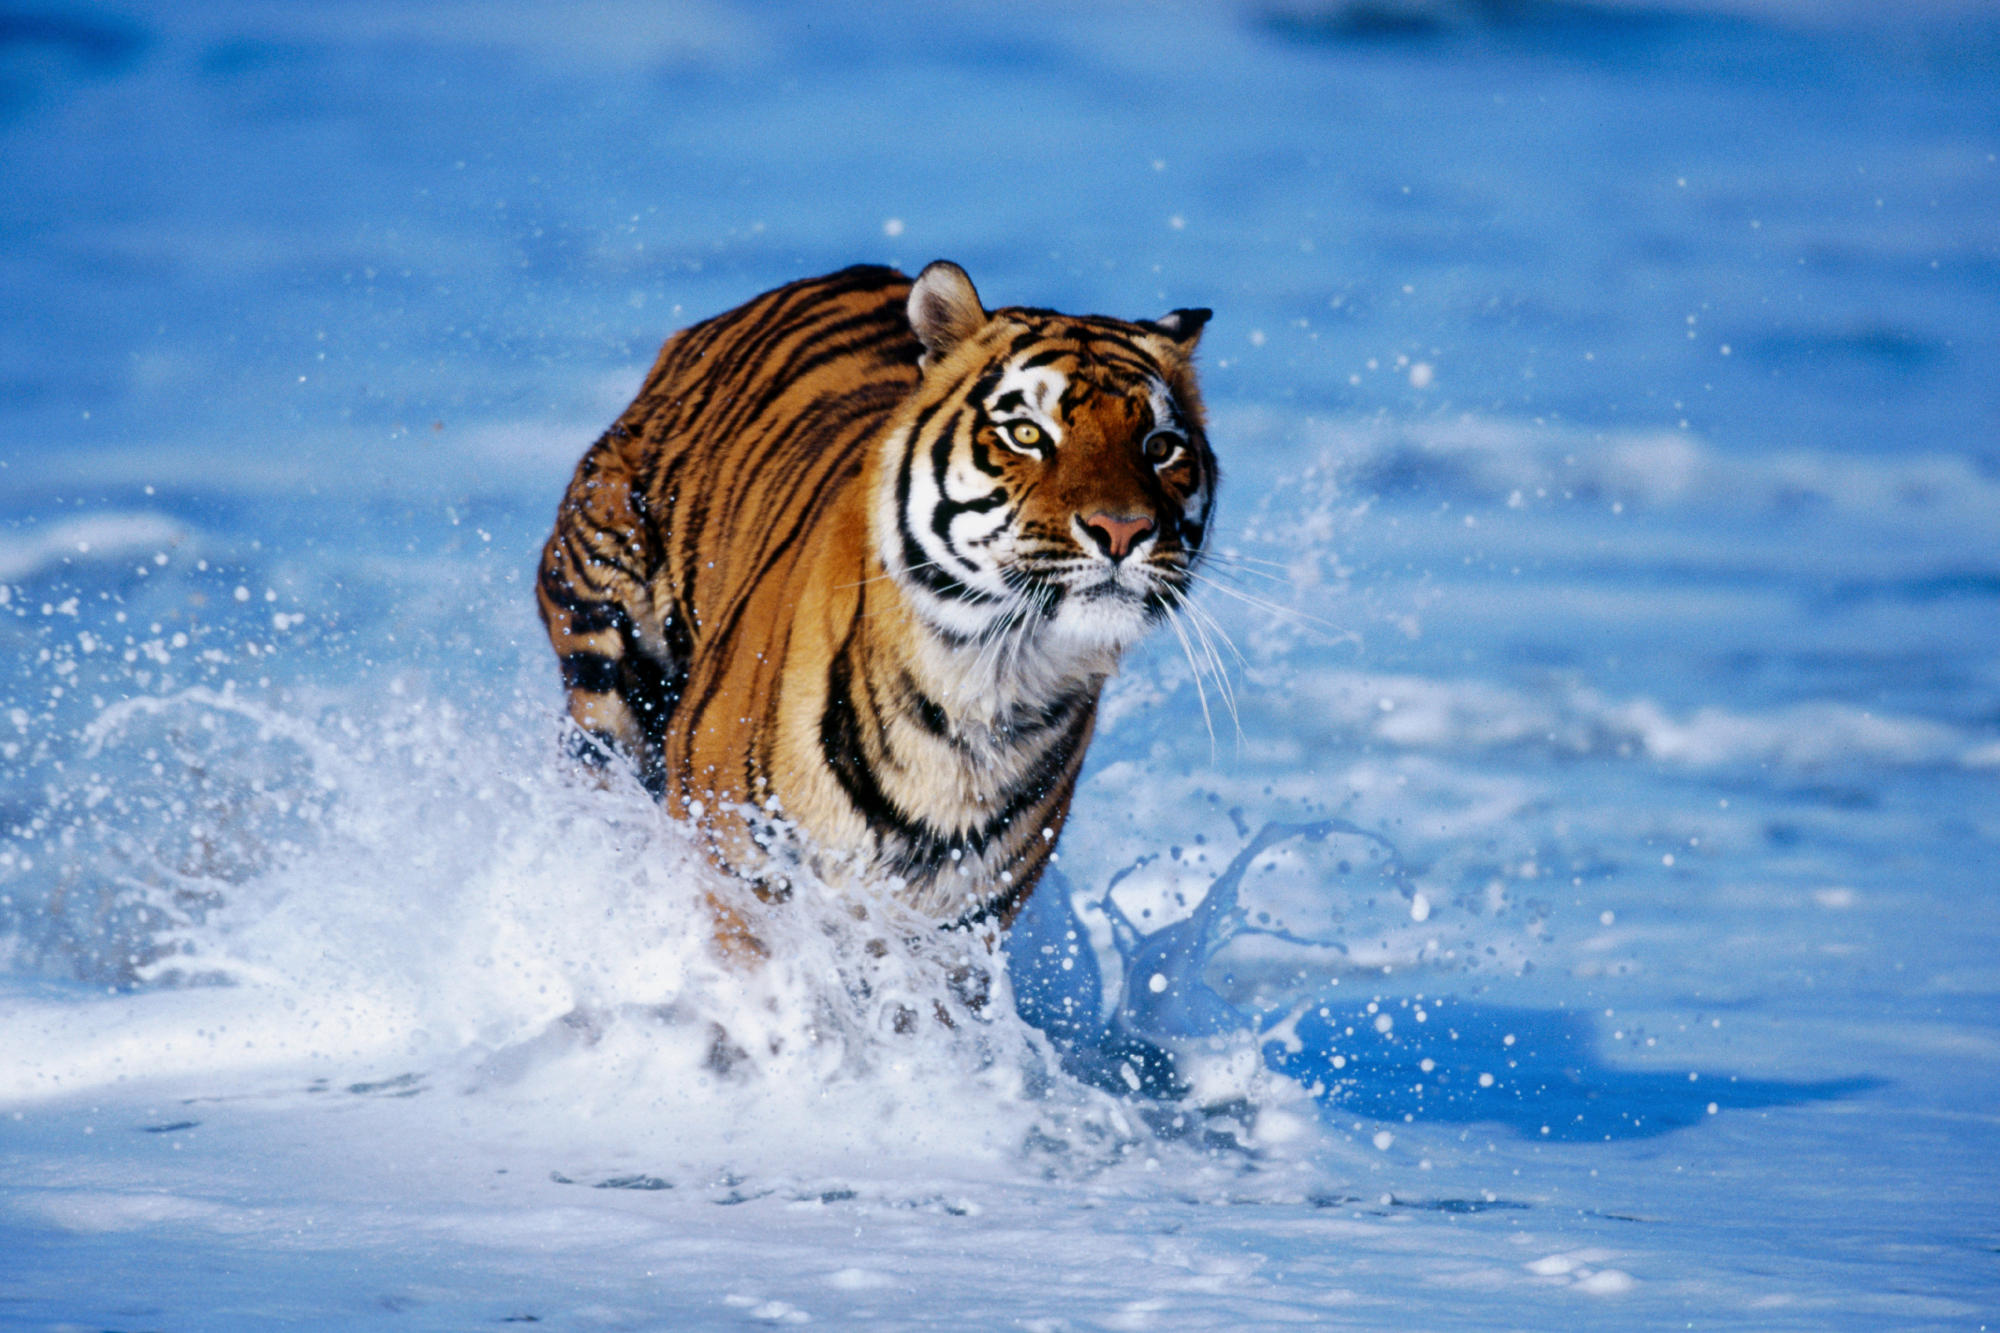 Running tiger images